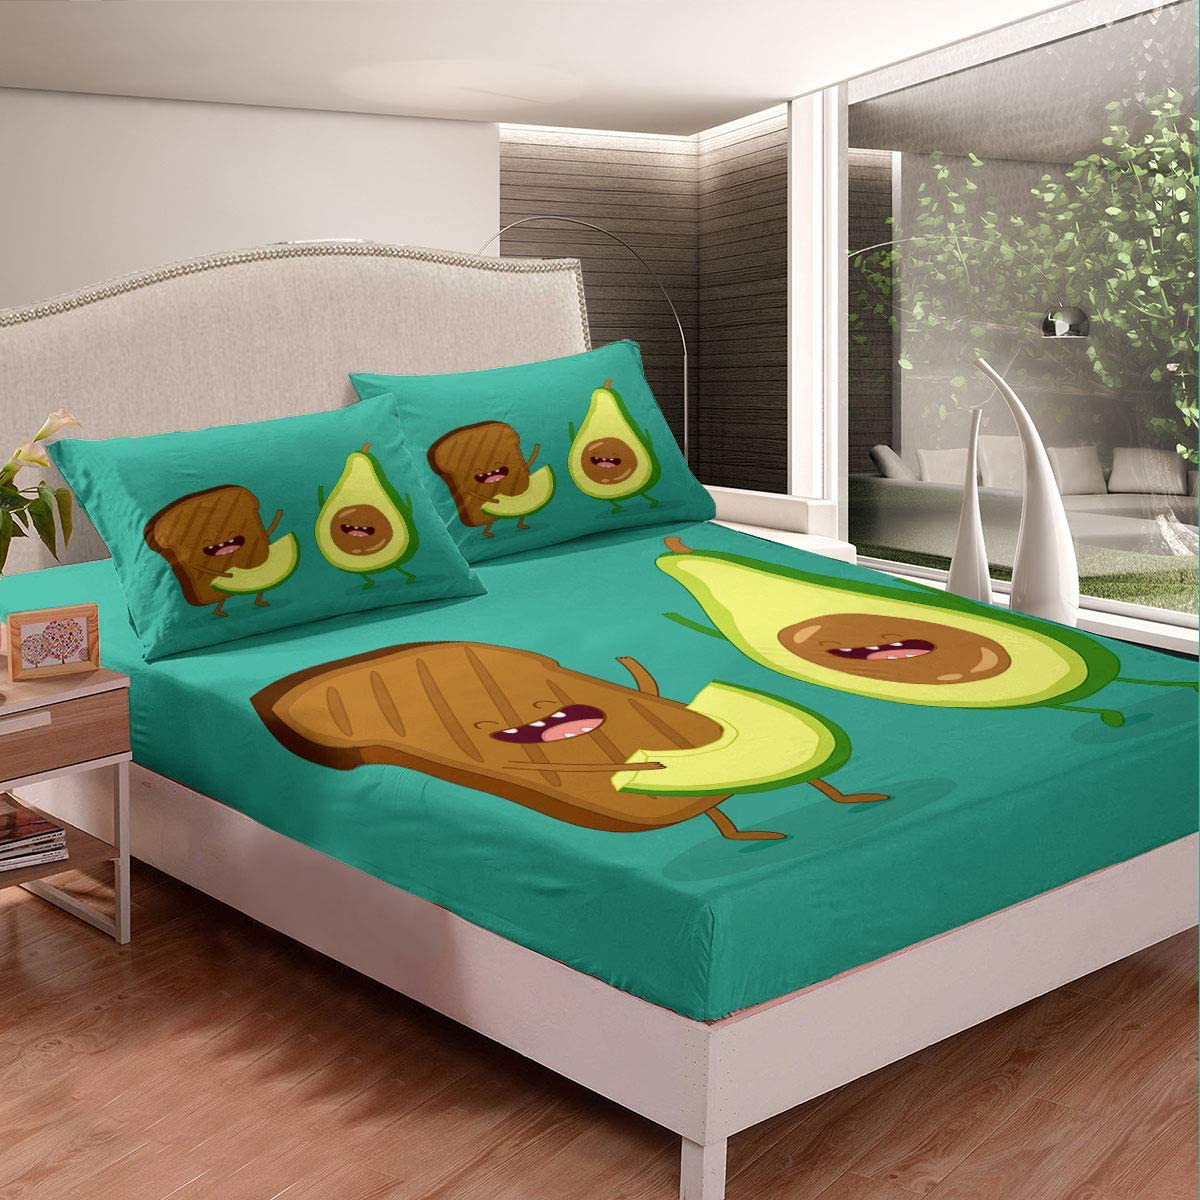 Bedding Fitted Sheet Set Avocado supreme Bread Fashion Toast Green and Blue